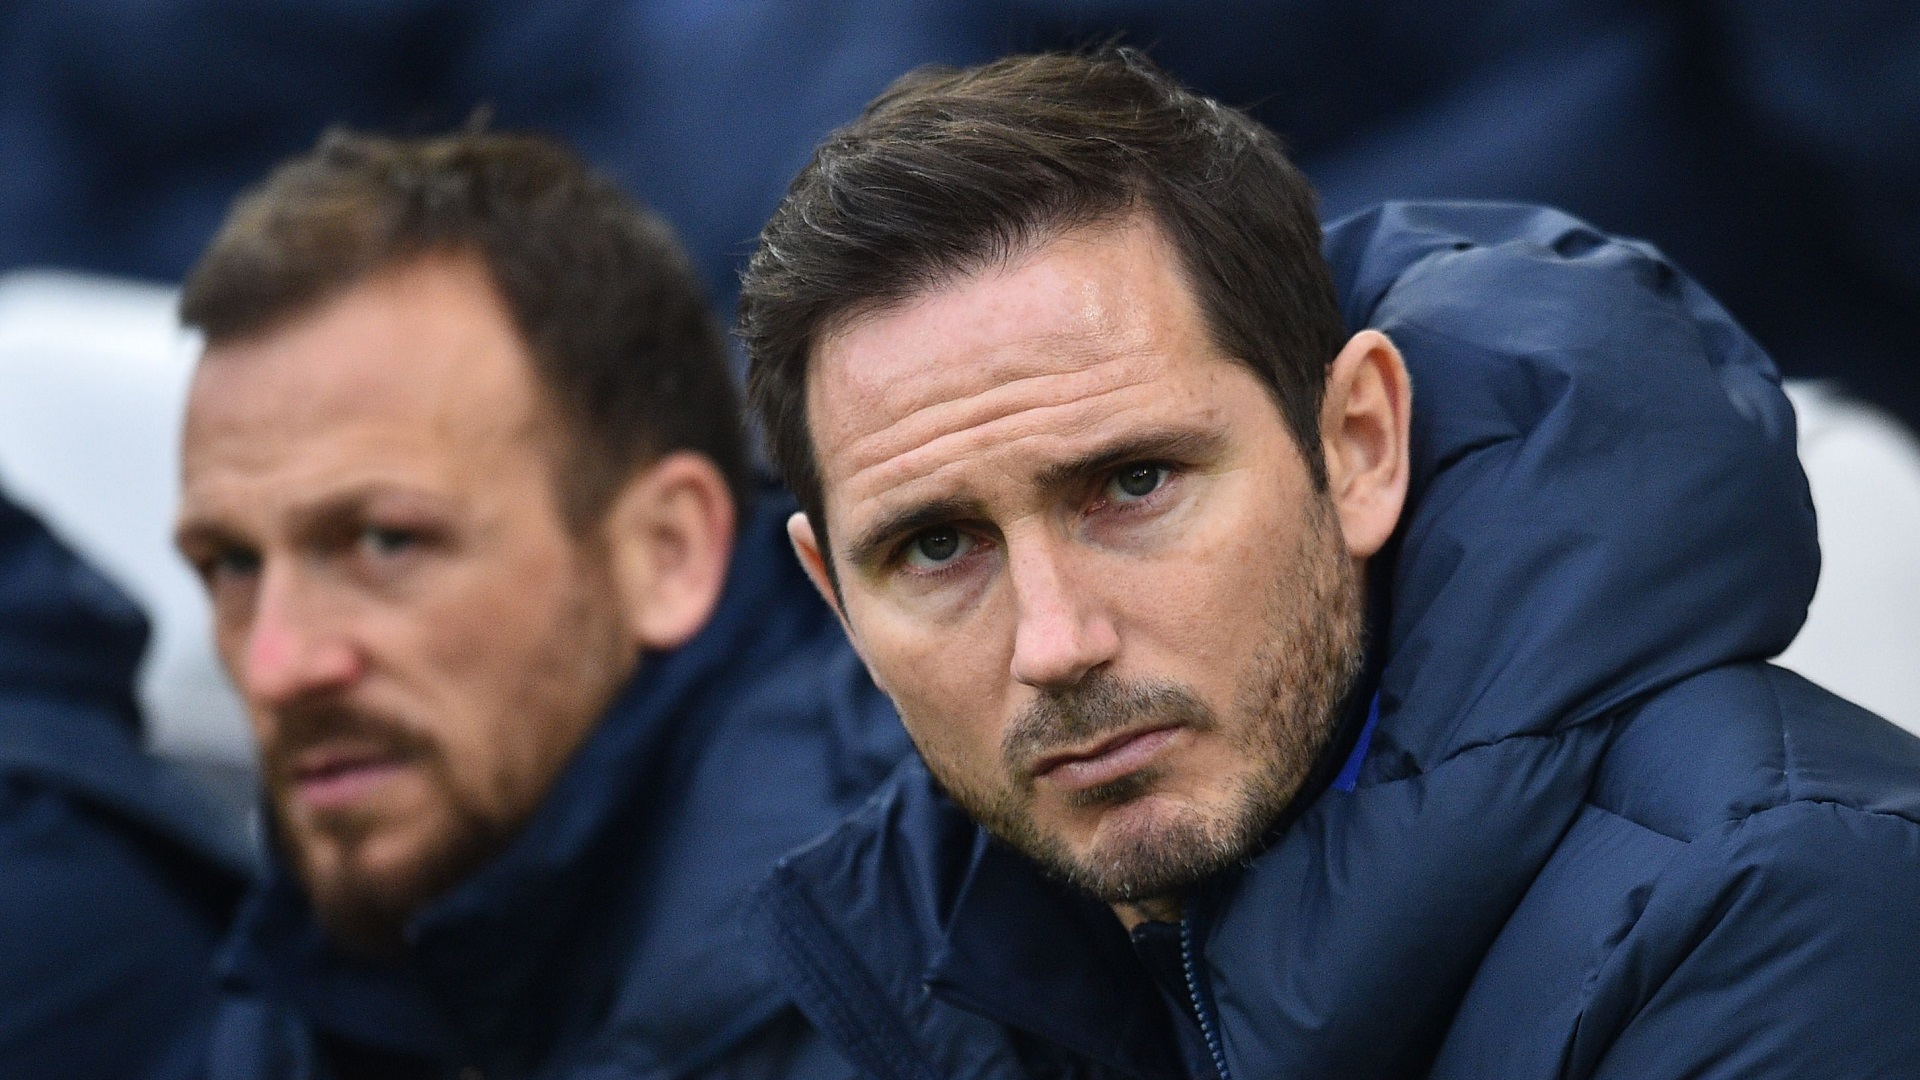 Chelsea signings 'have to improve the squad' - Morris